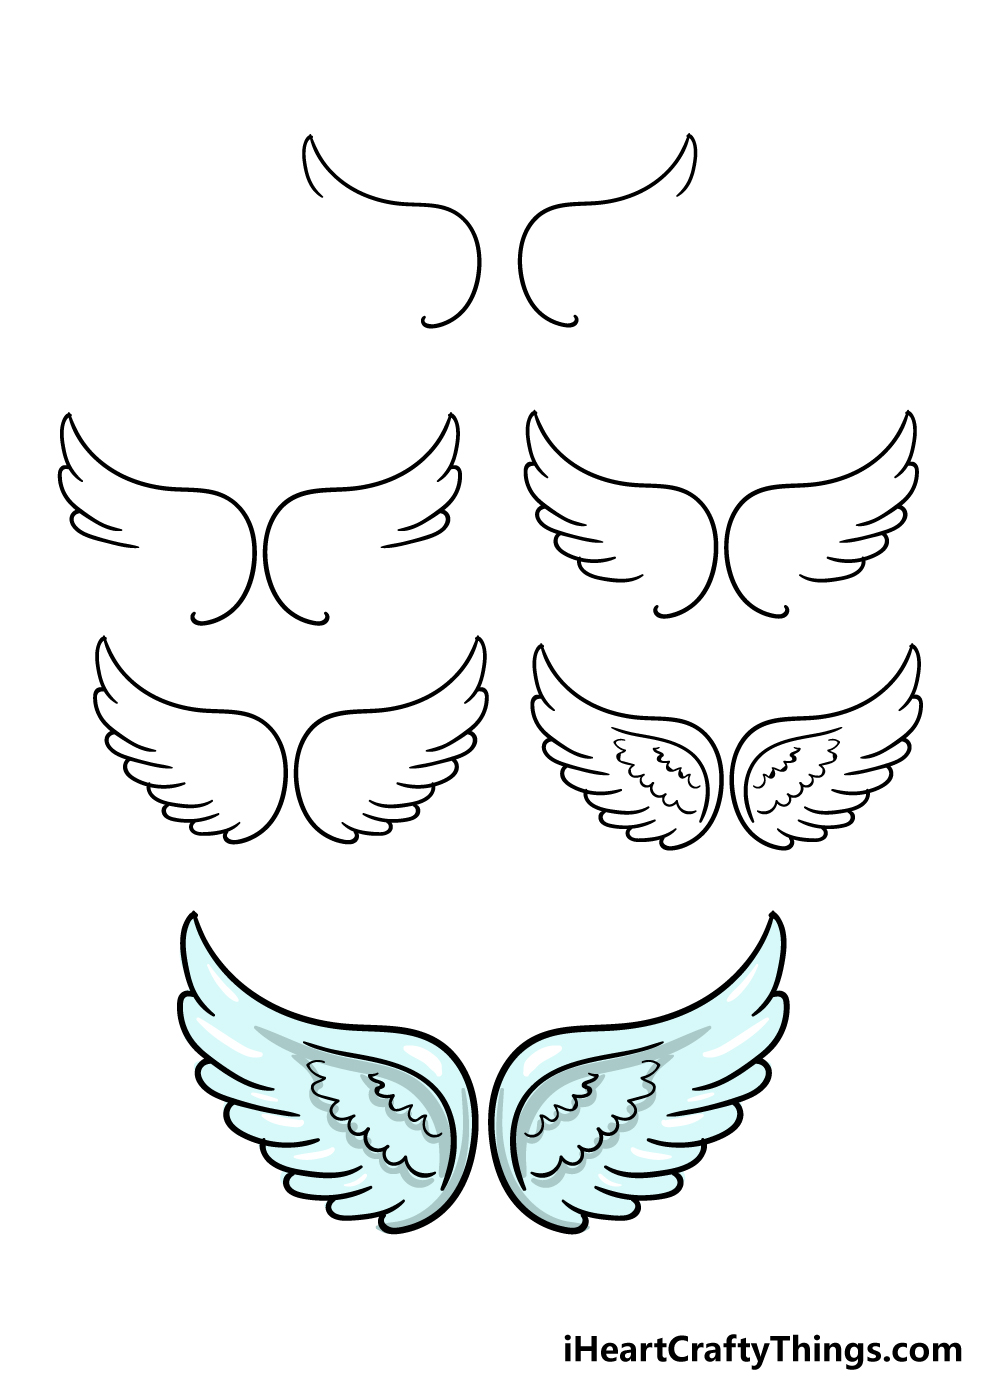 how to draw angel wings in 6 steps